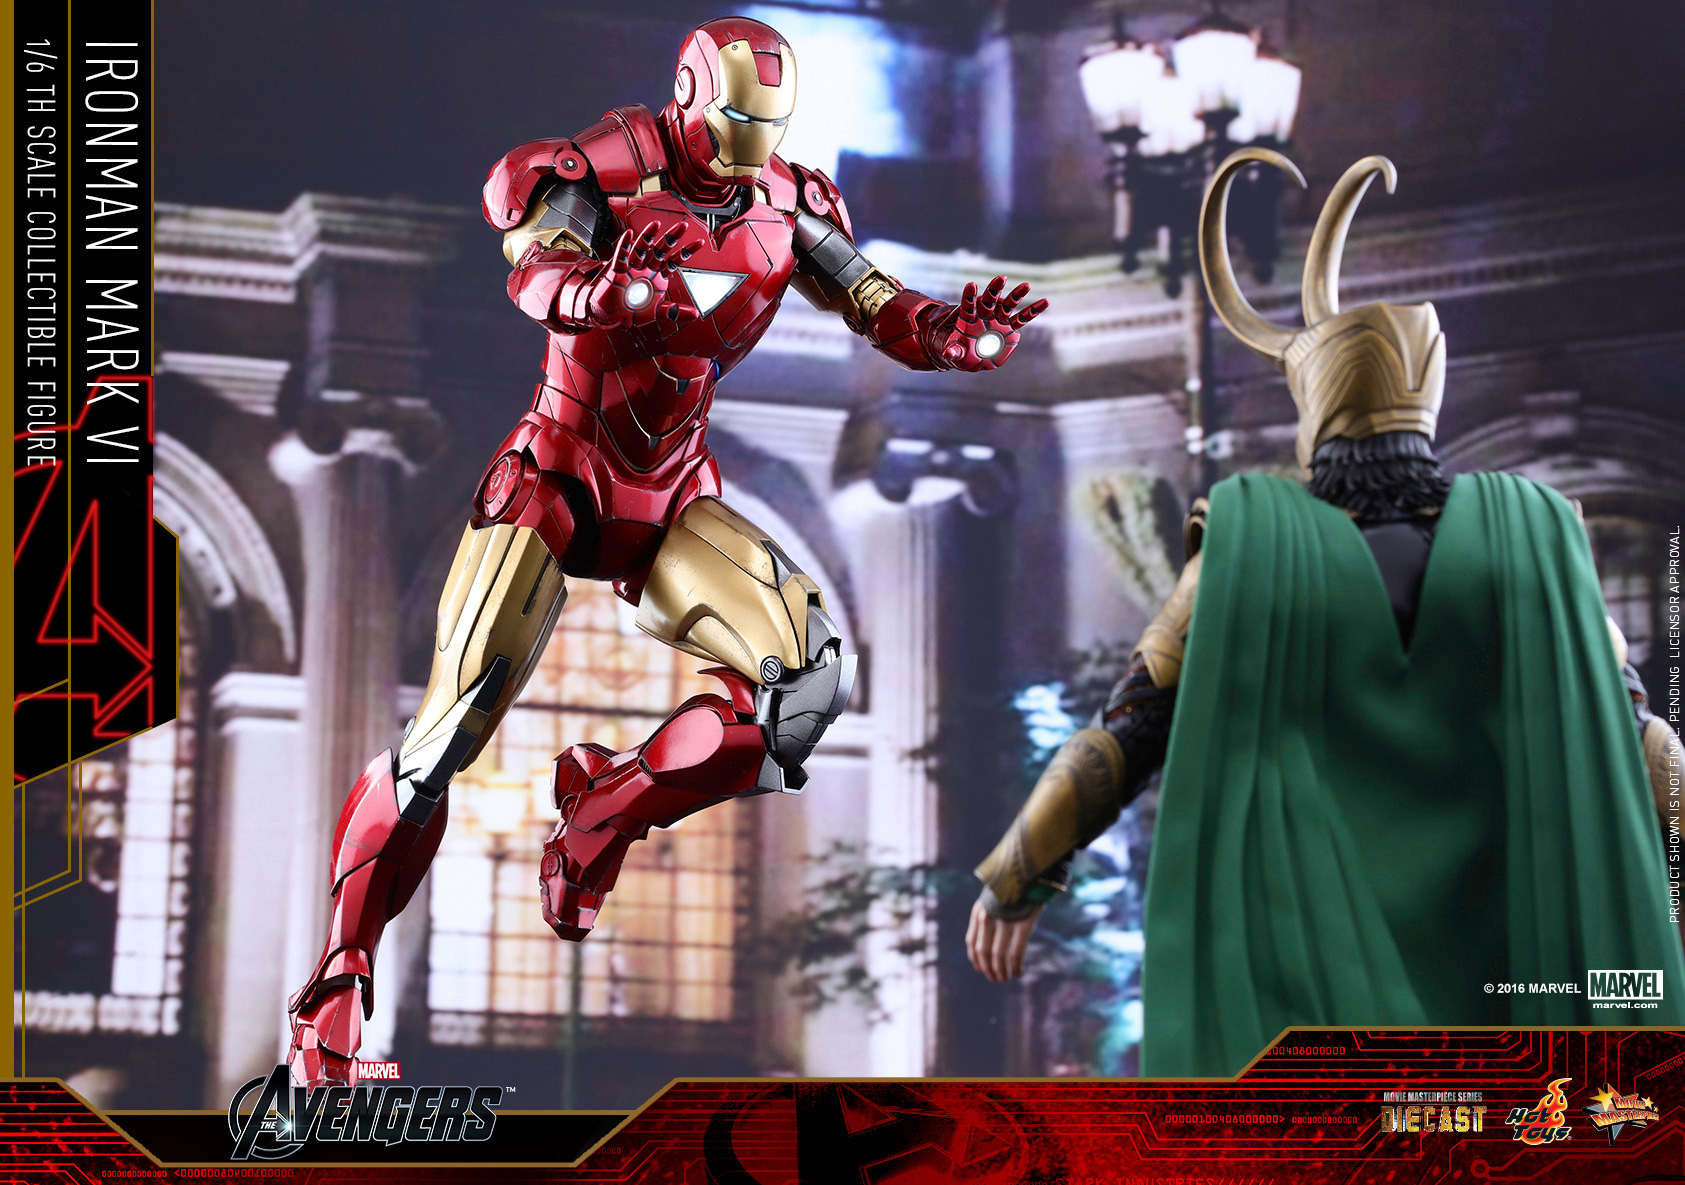 1/6 hot toys - mms378d17 - the avengers: iron man mark vi